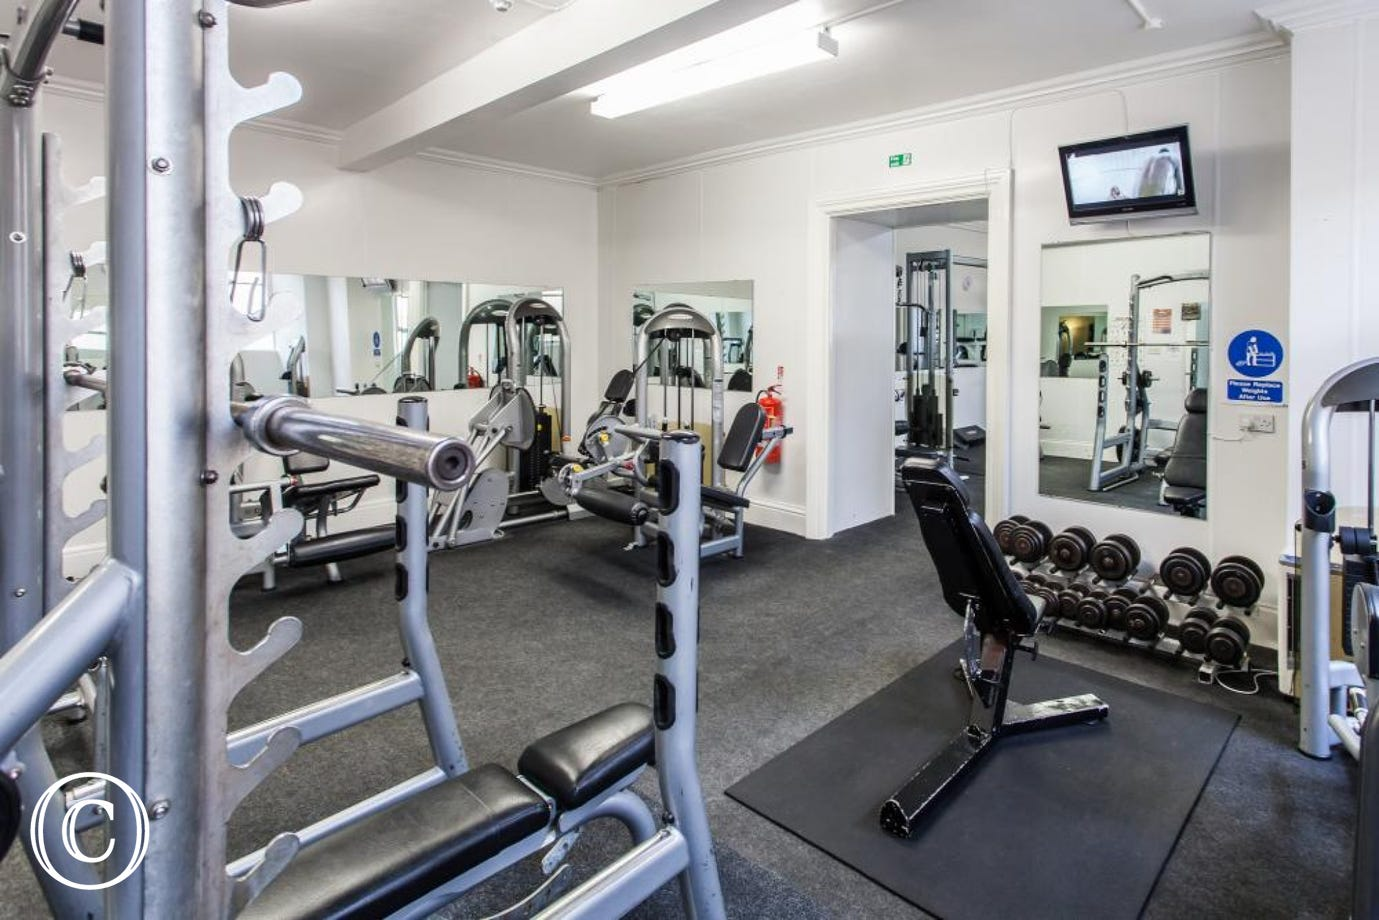 Indoor Pool, Spa and Gym Facilities available in the Crescent (Additional Charges Apply)